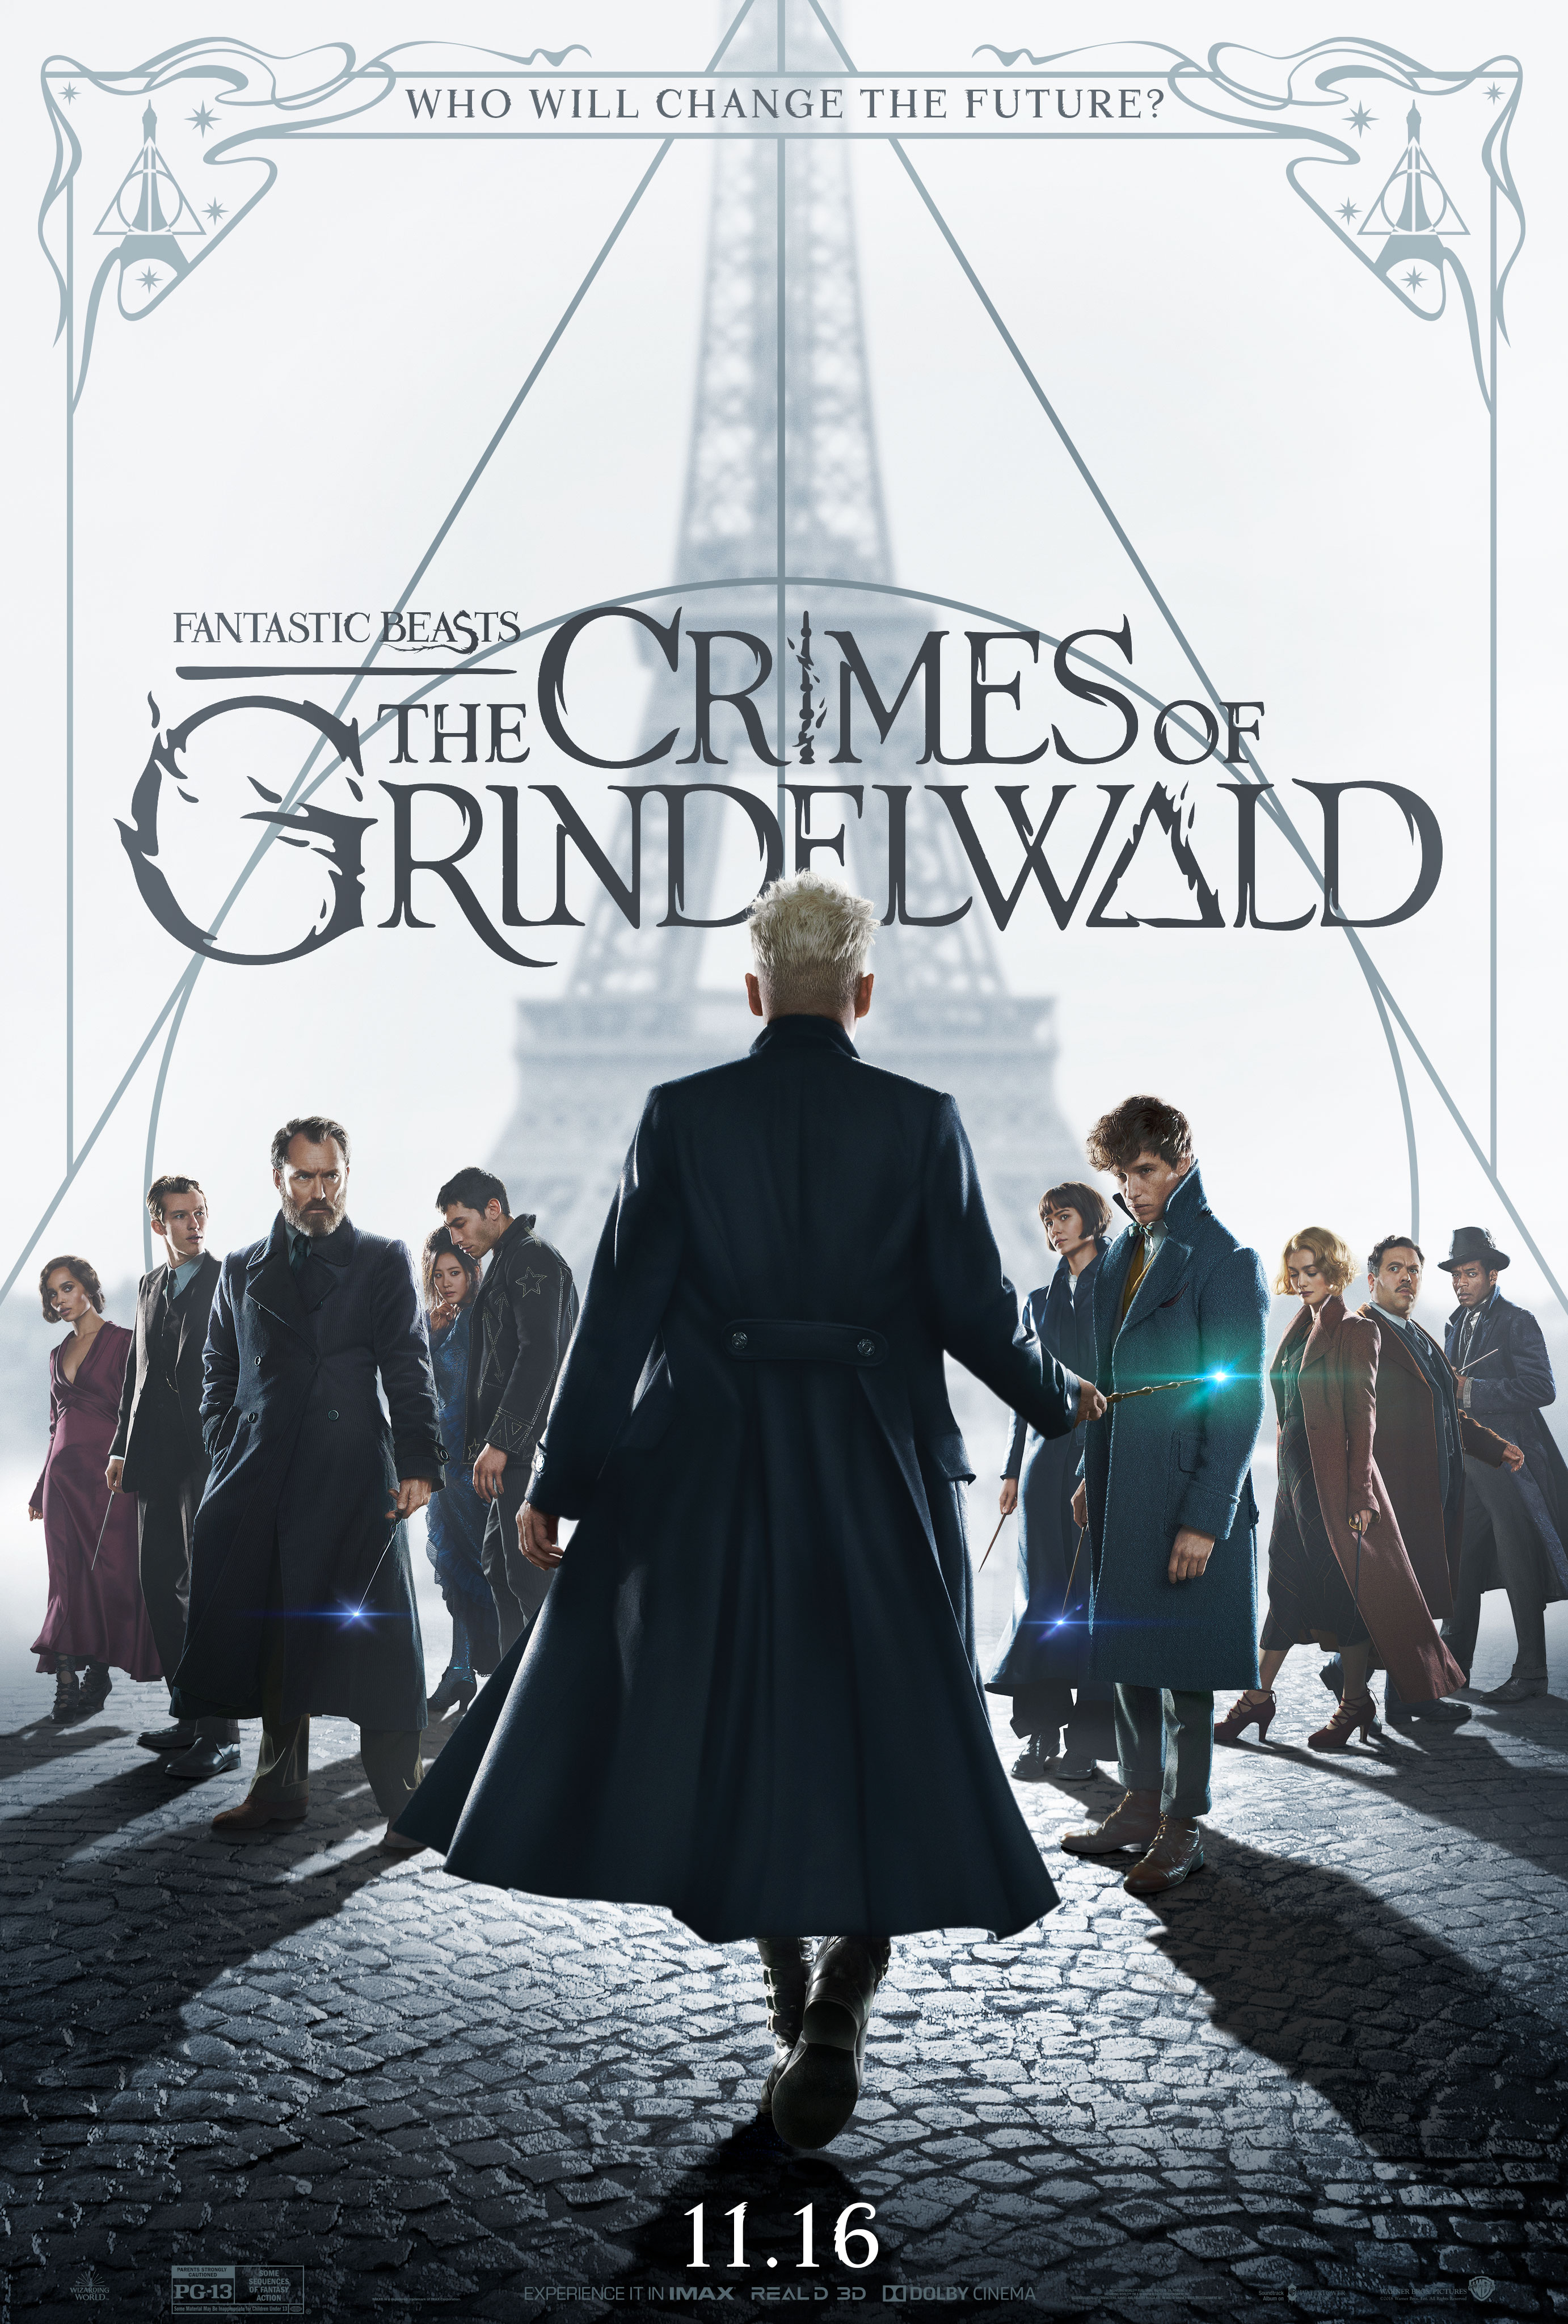 Fantastic Beasts The Crimes Of Grindelwald At An Amc Theatre Near You